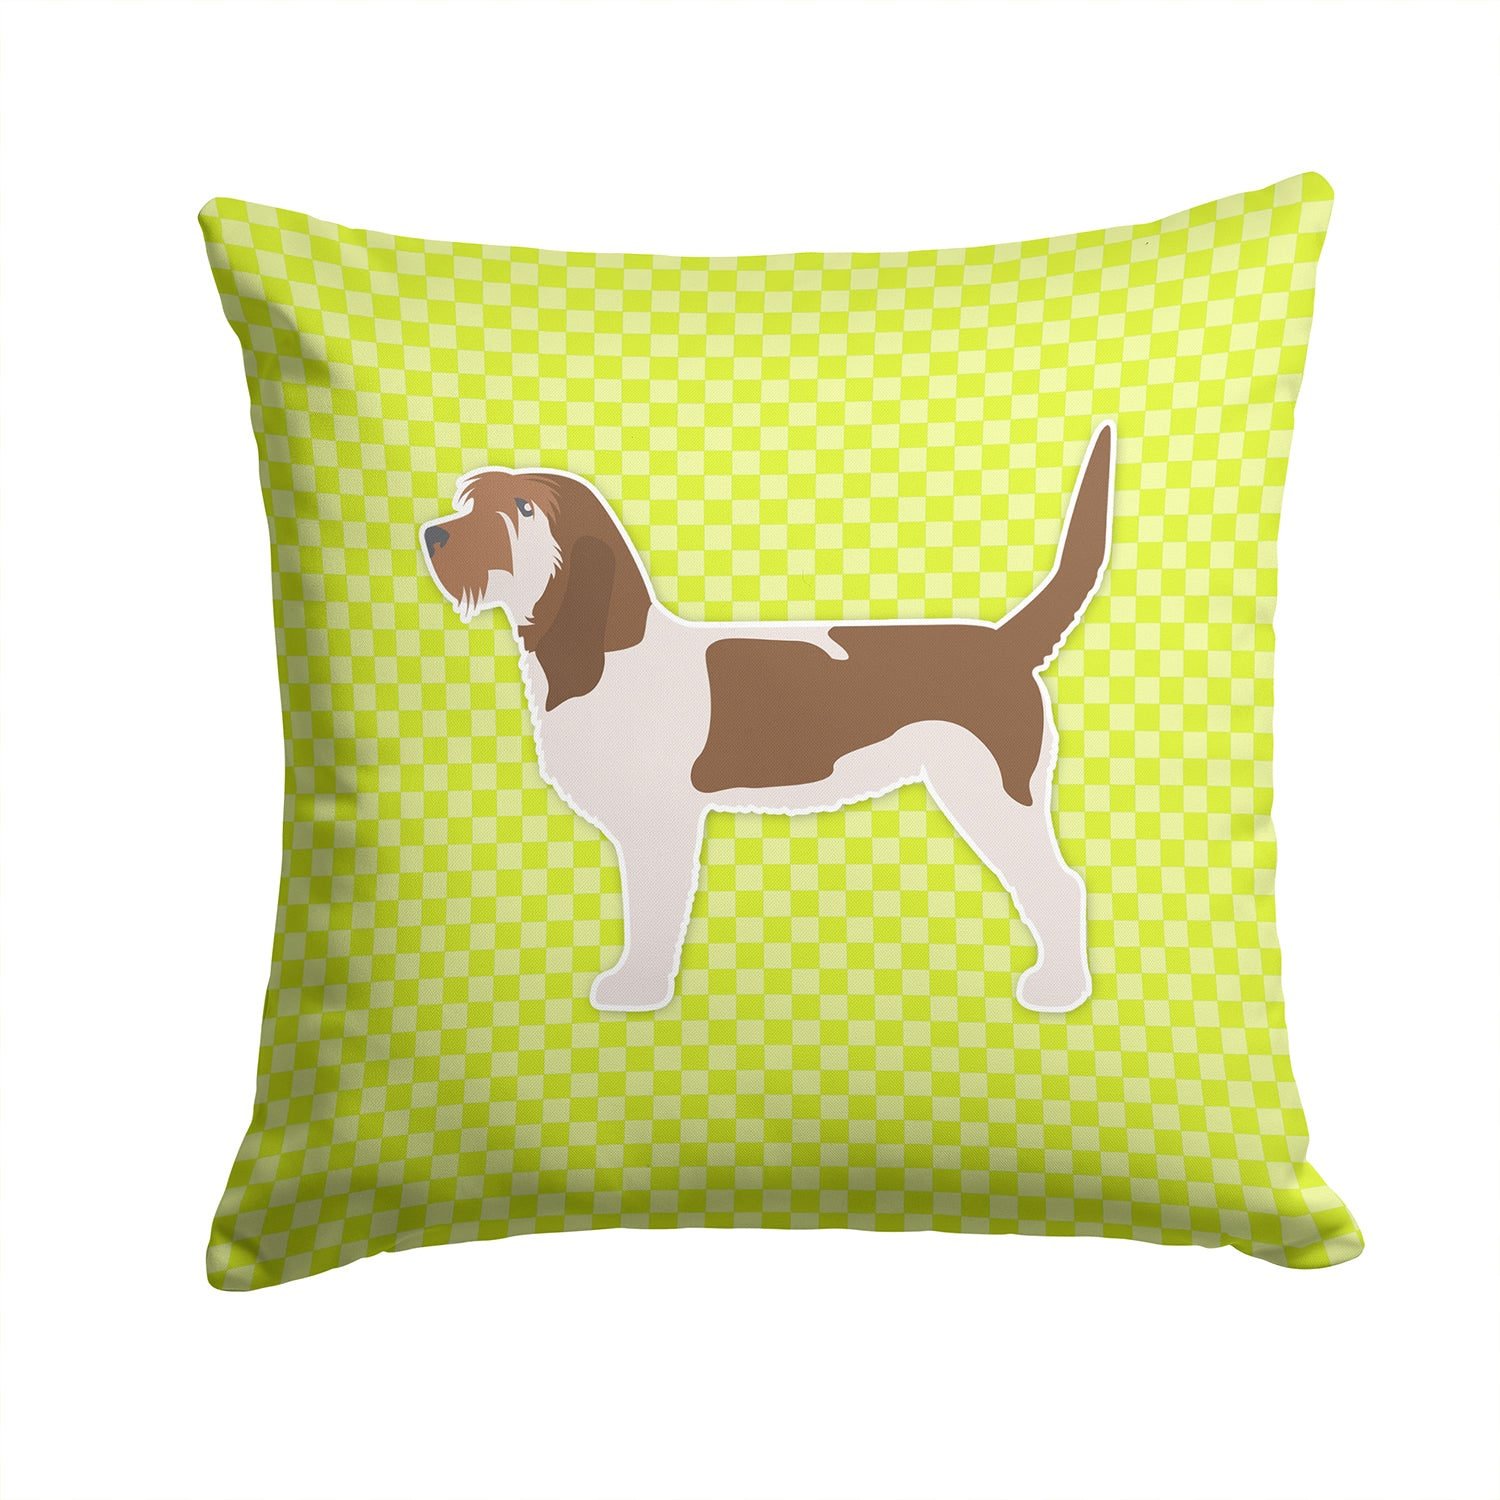 Grand Basset Griffon Vendeen Checkerboard Green Fabric Decorative Pillow BB3790PW1414 by Caroline's Treasures